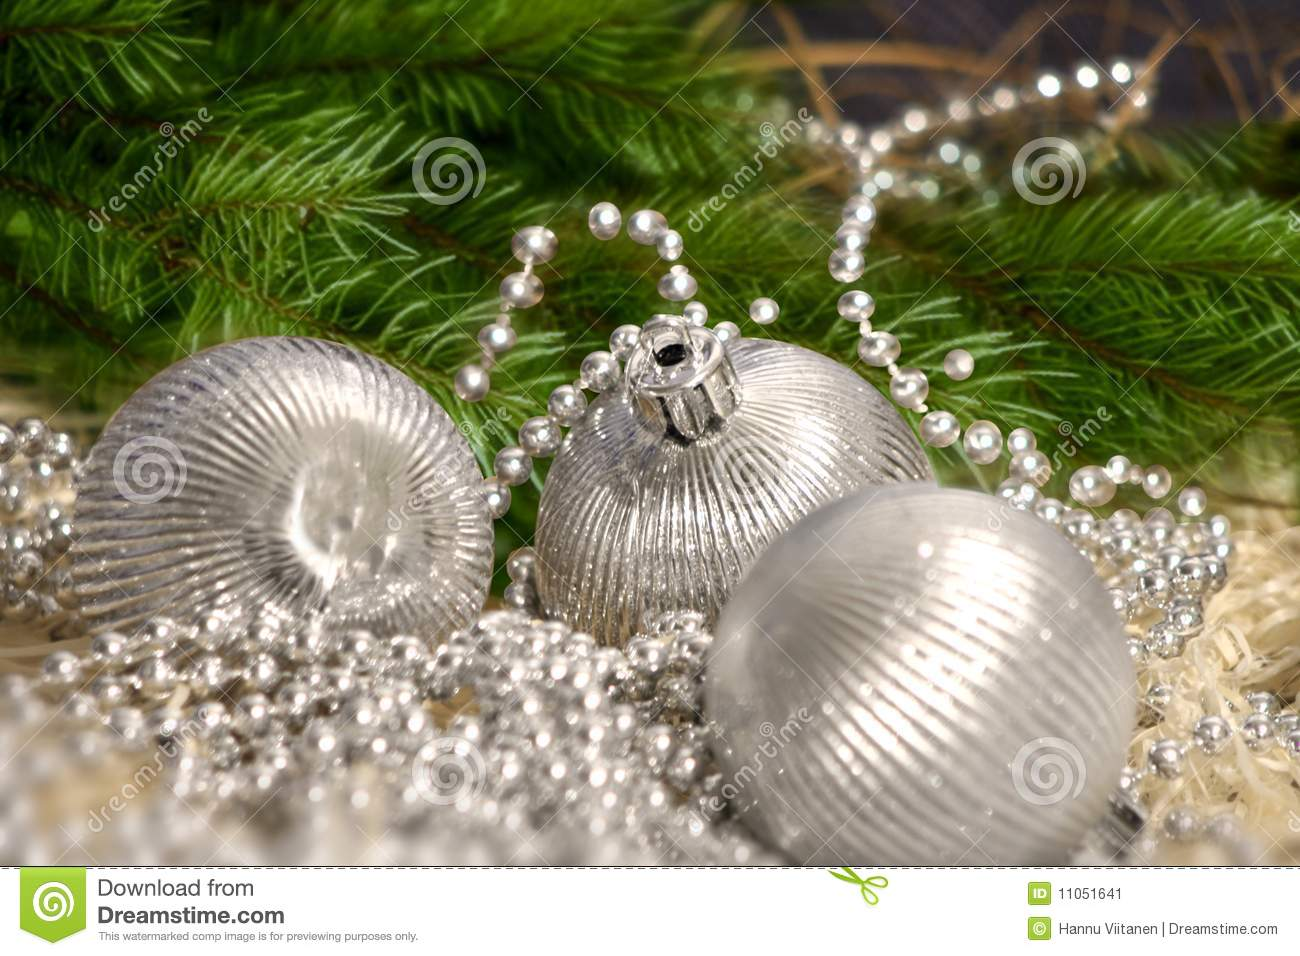 download christmas silver balls with pearls stock image image of christmas gold 11051641 - The Christmas Pearl